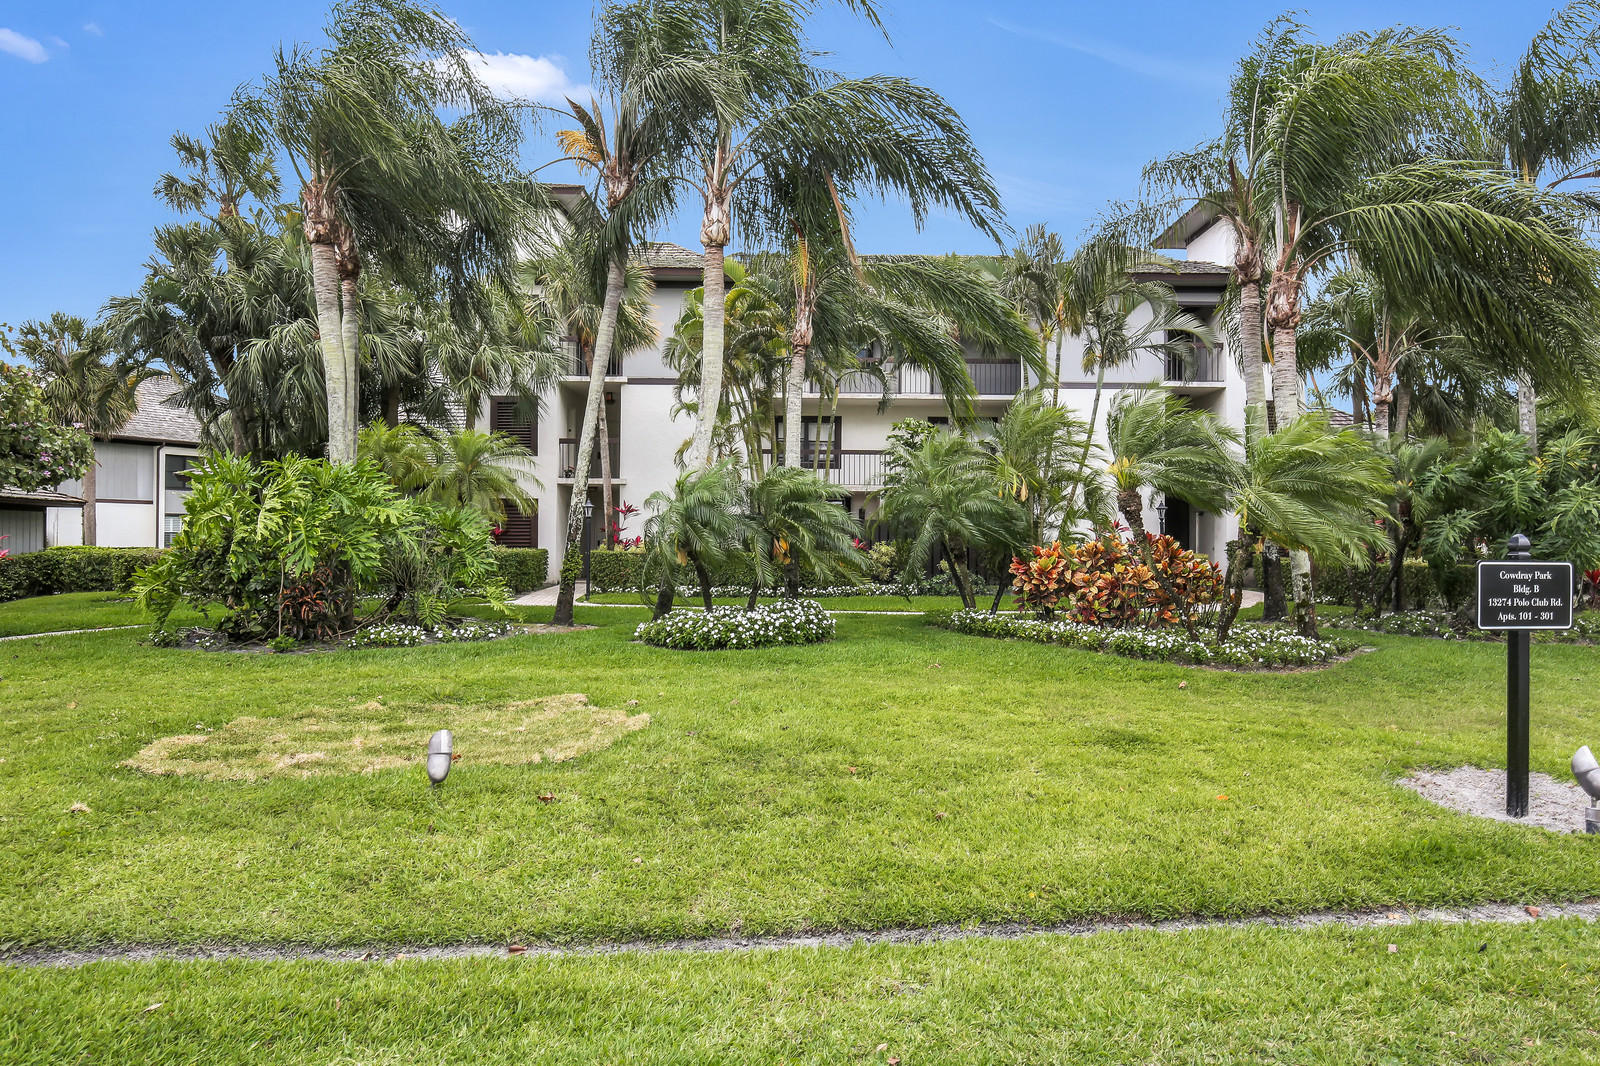 13274 Polo Club Road, Wellington, Florida 33414, 4 Bedrooms Bedrooms, ,4 BathroomsBathrooms,Condo/Coop,For Sale,Polo Club,3,RX-10428975